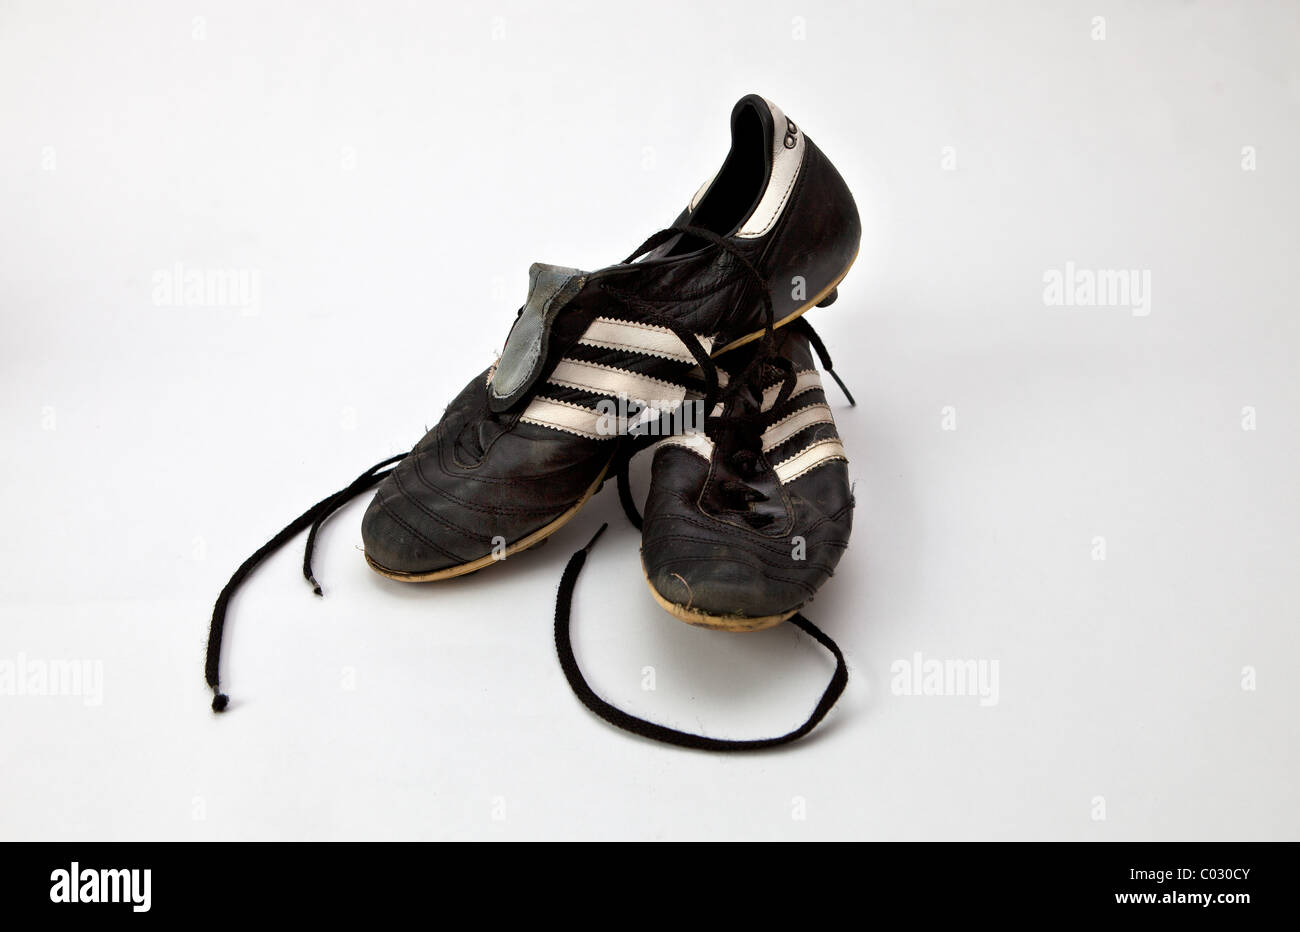 316a7a819 Pair of old football boots Stock Photo: 34486955 - Alamy